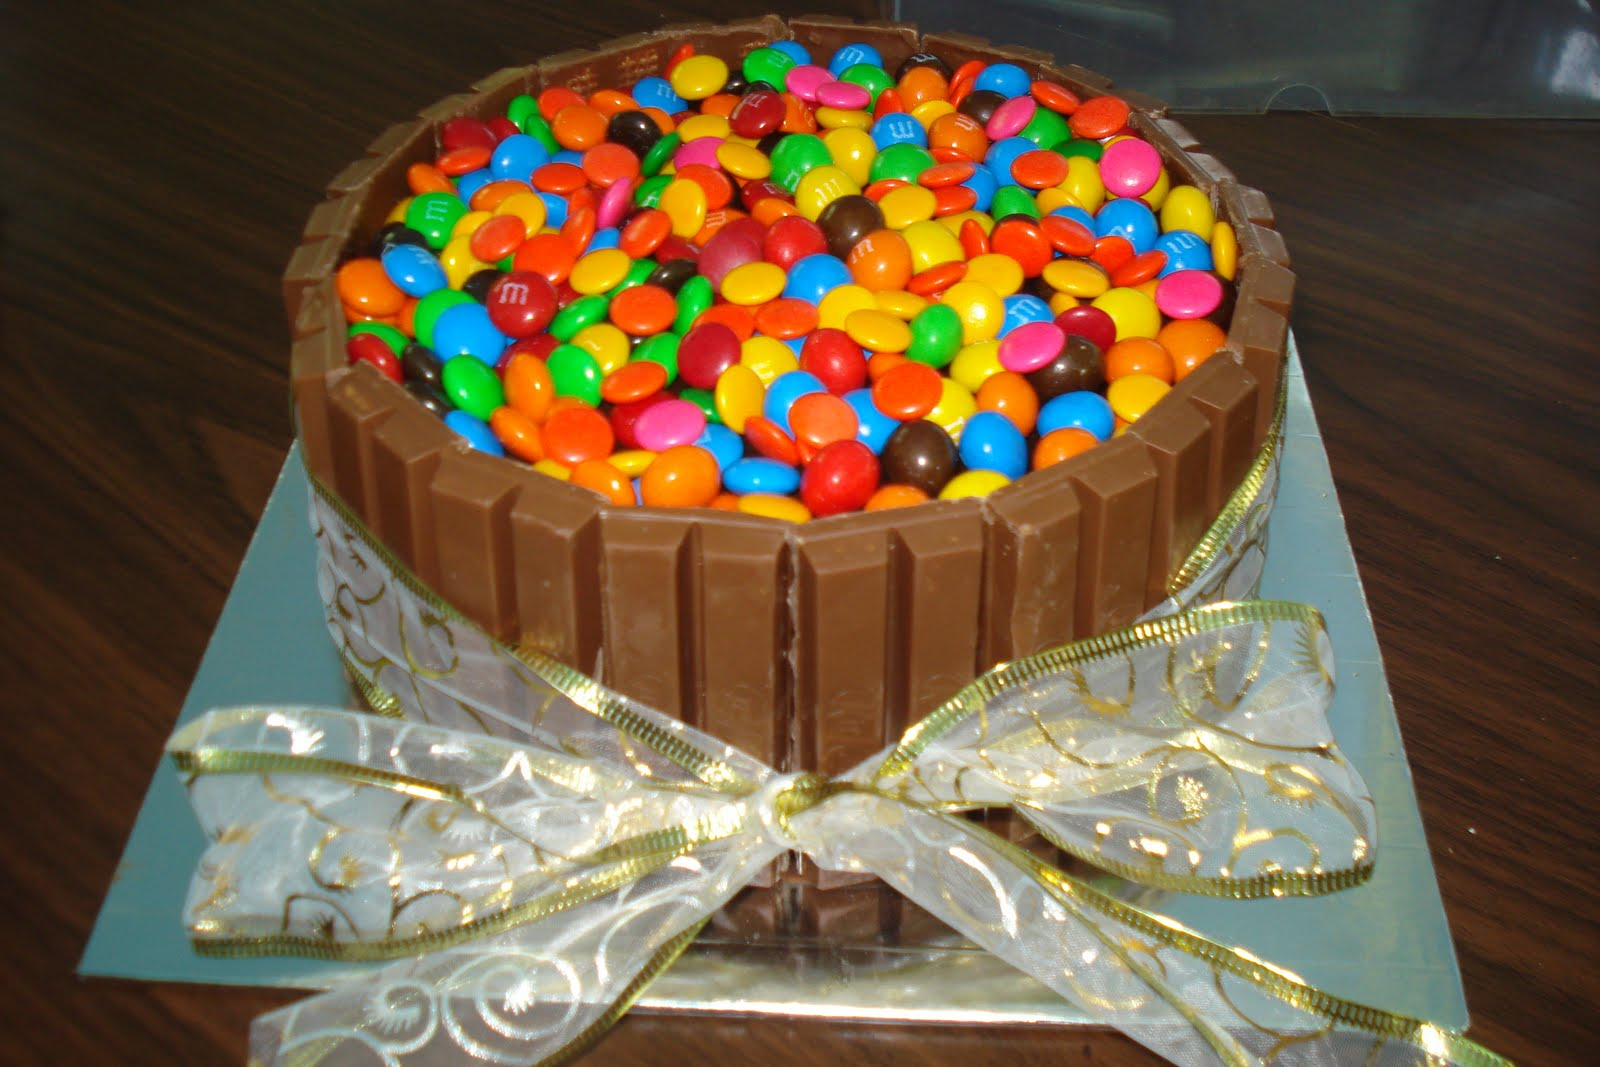 Jasmines Kitchen Of All Things Nice Candy themed choc cake